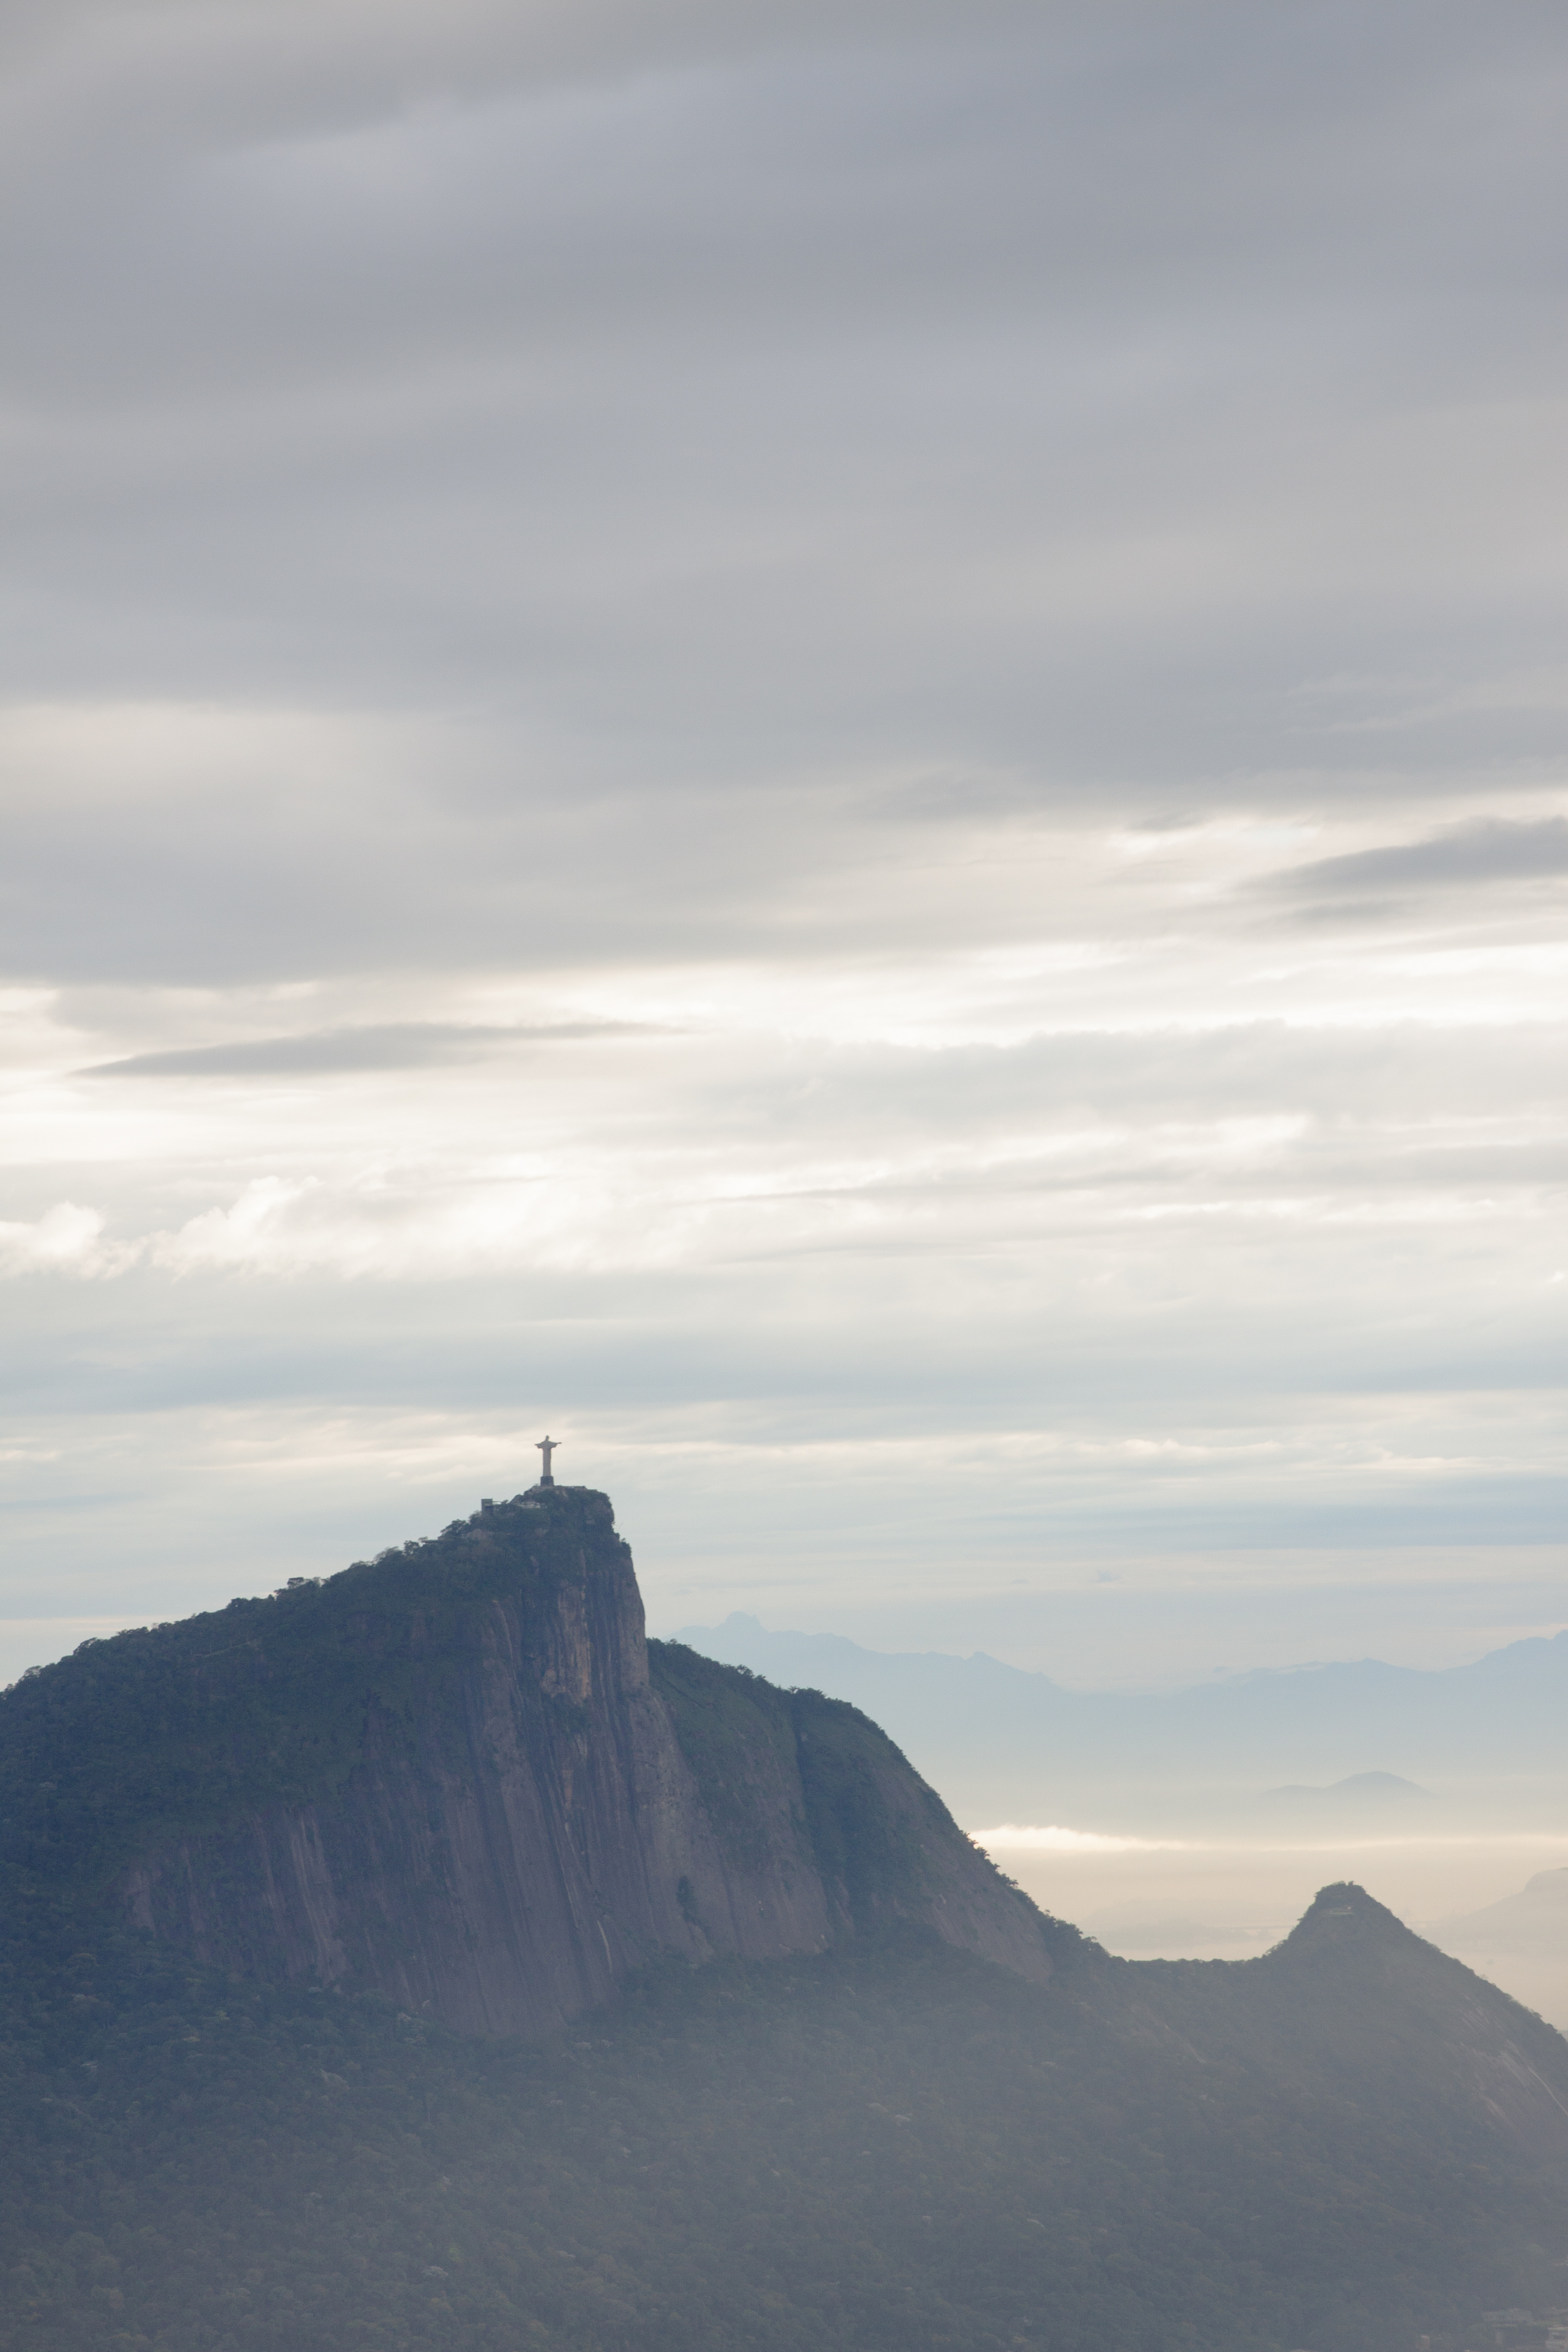 Rio de Janeiro, Brazil, landscape, travel photography, Two Brothers, Dos Irmaos, sunrise, Christ the Redeemer